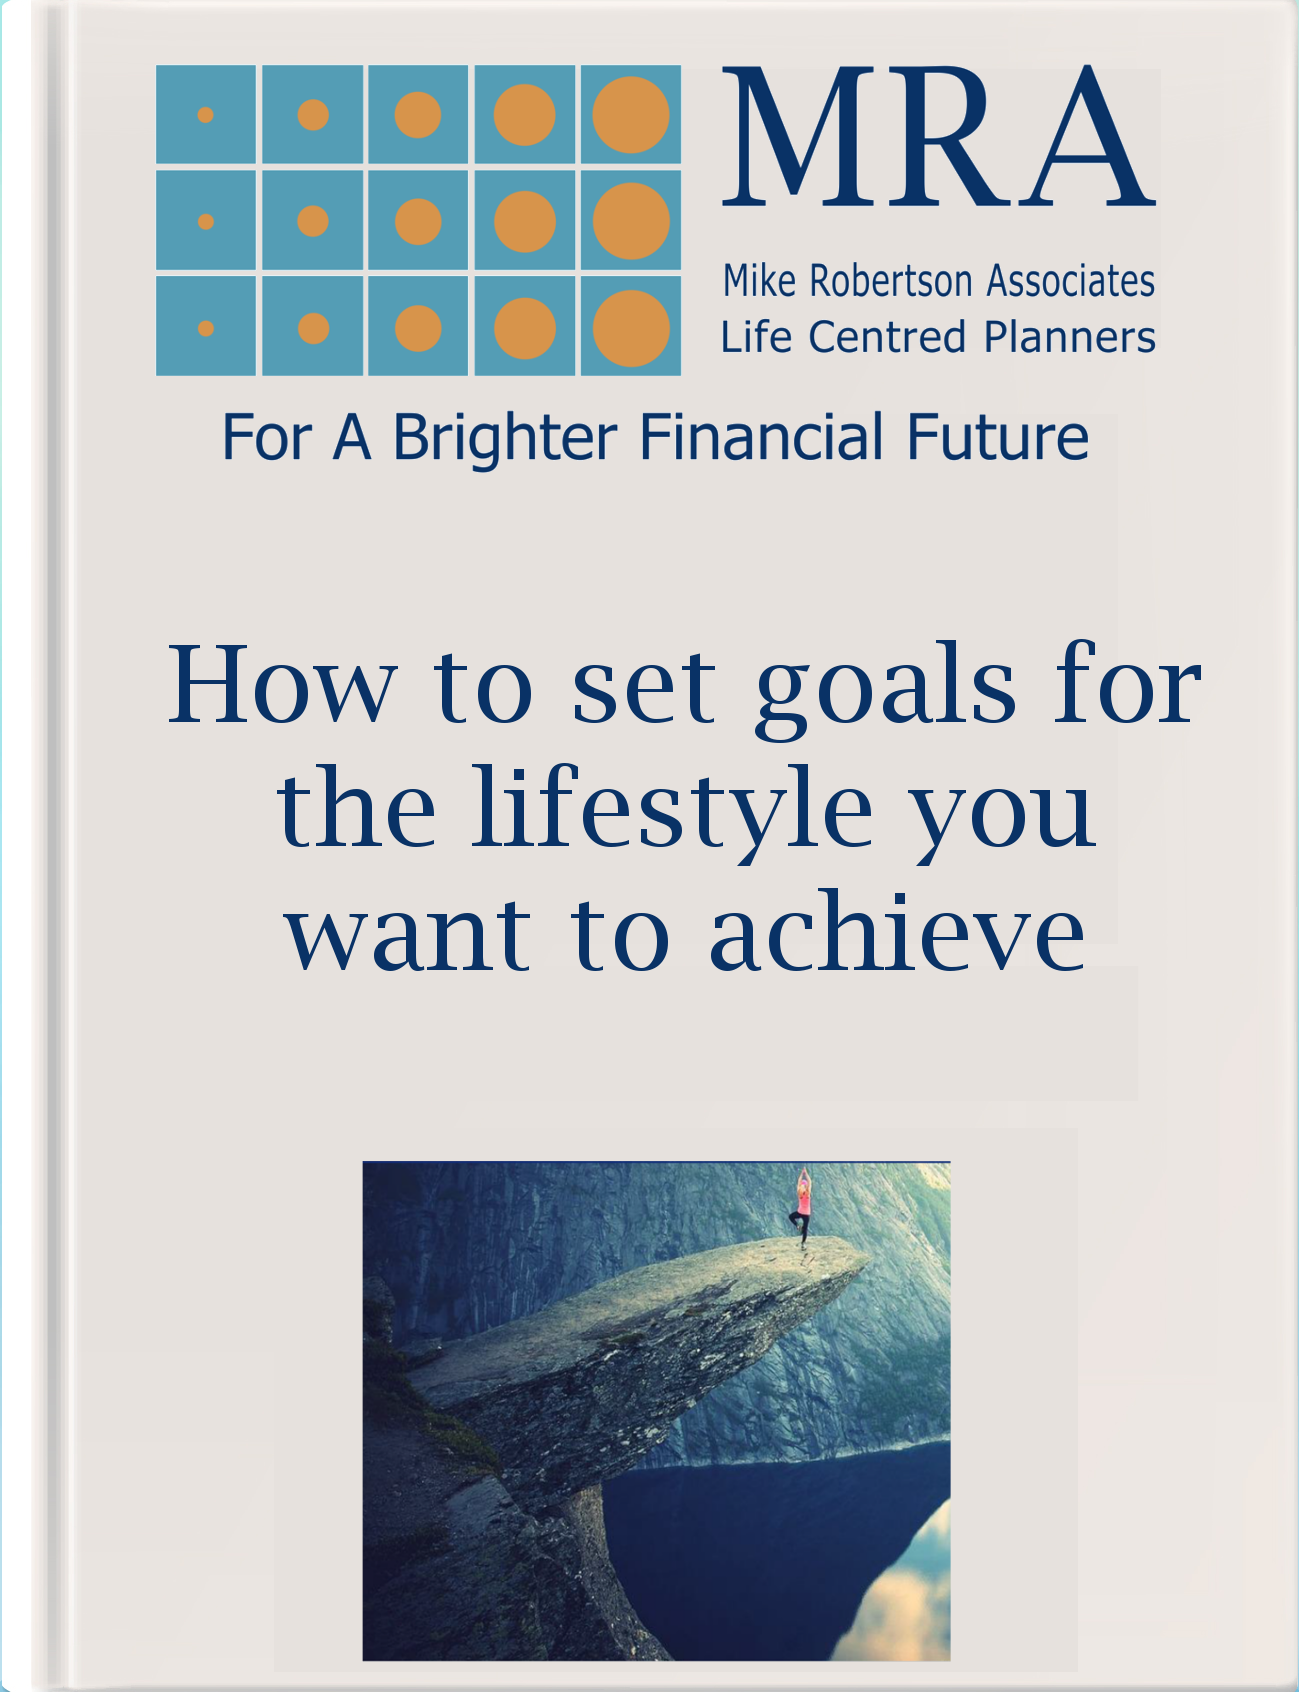 How to set goals for the lifestyle you want to achieve